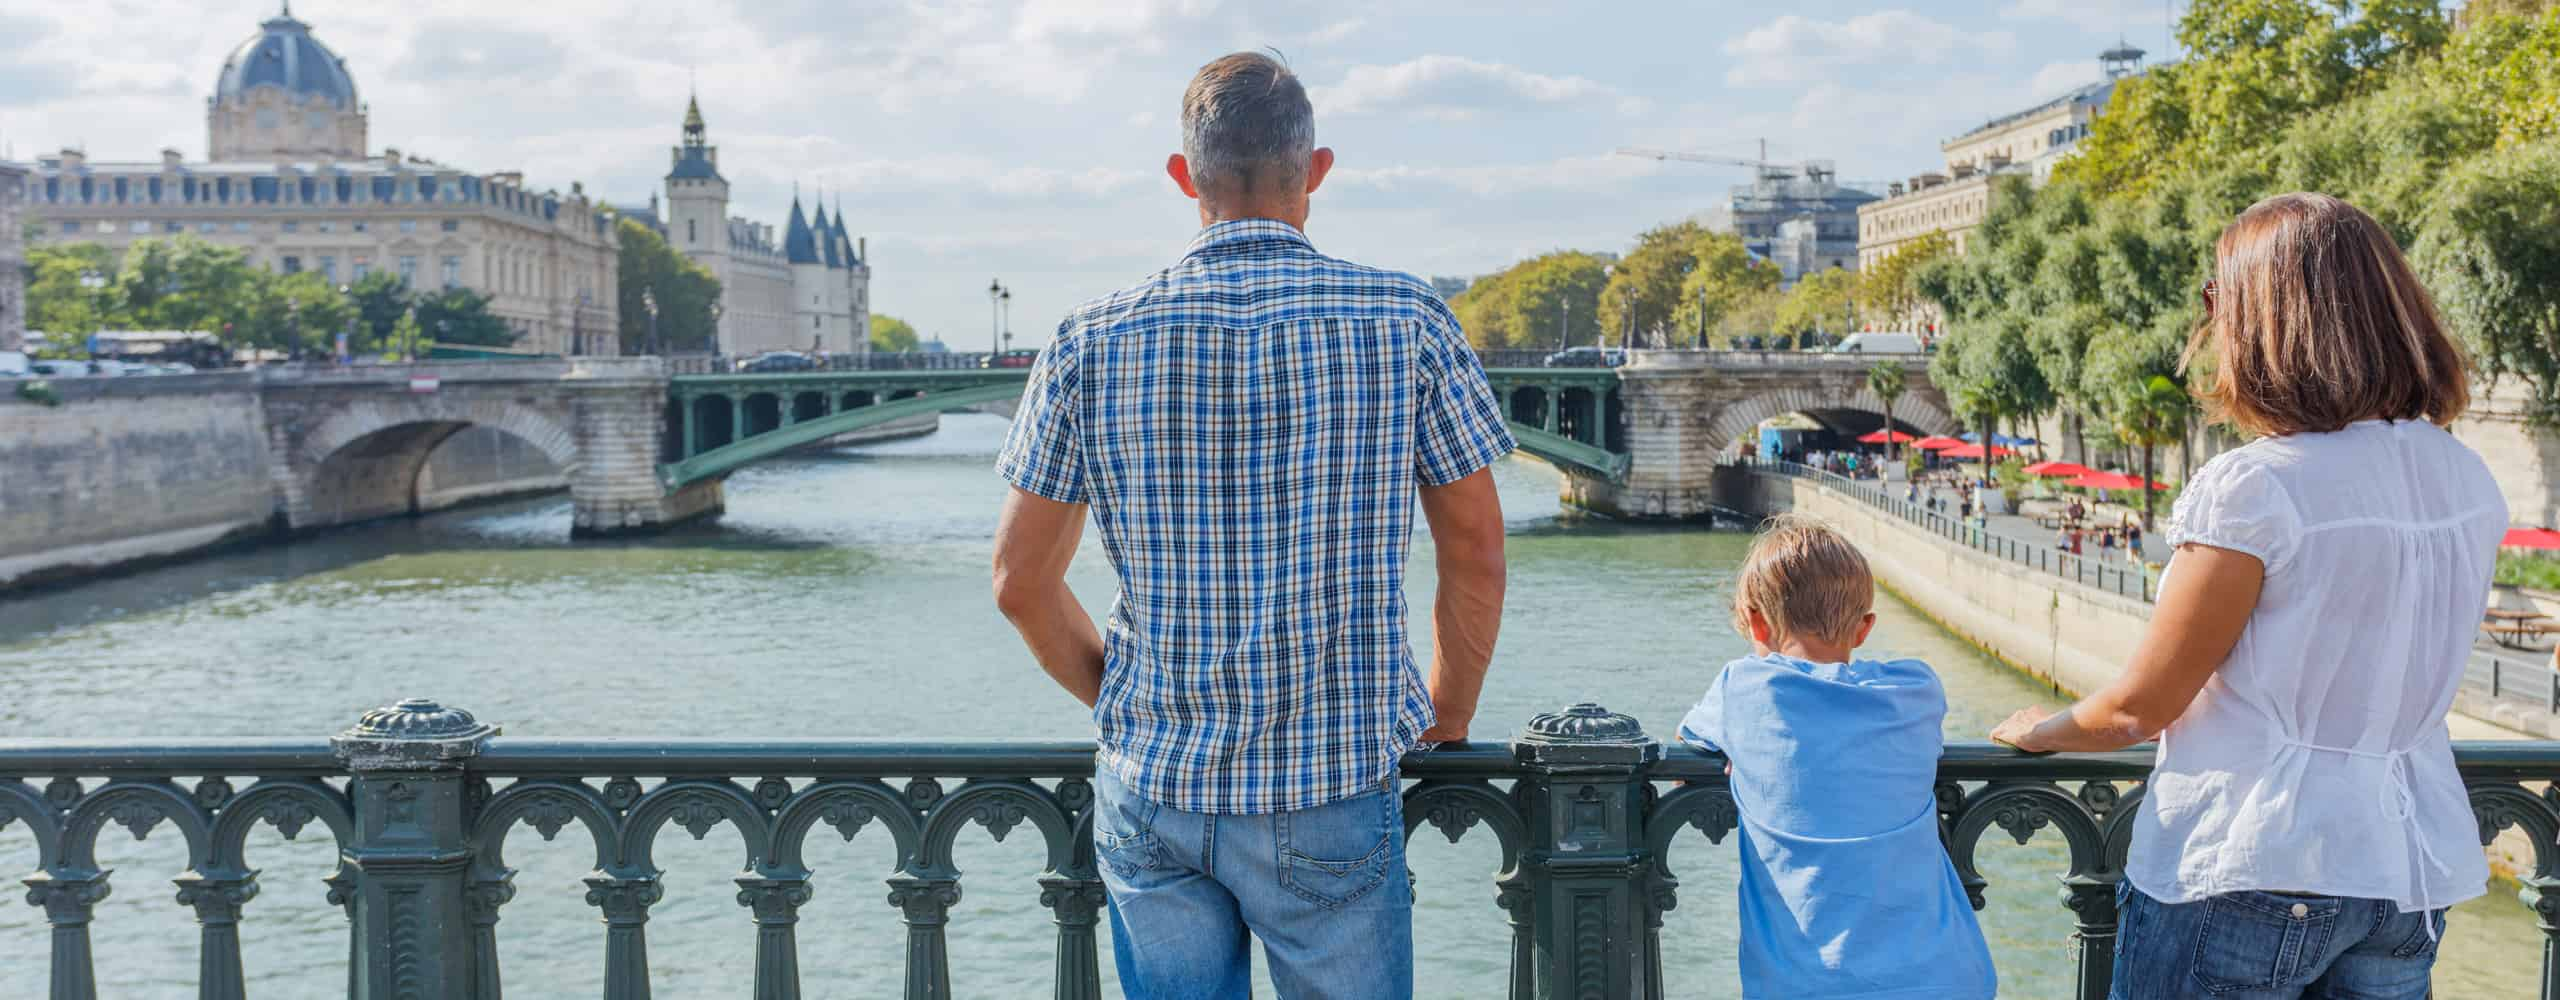 Family Vacation In Paris, France